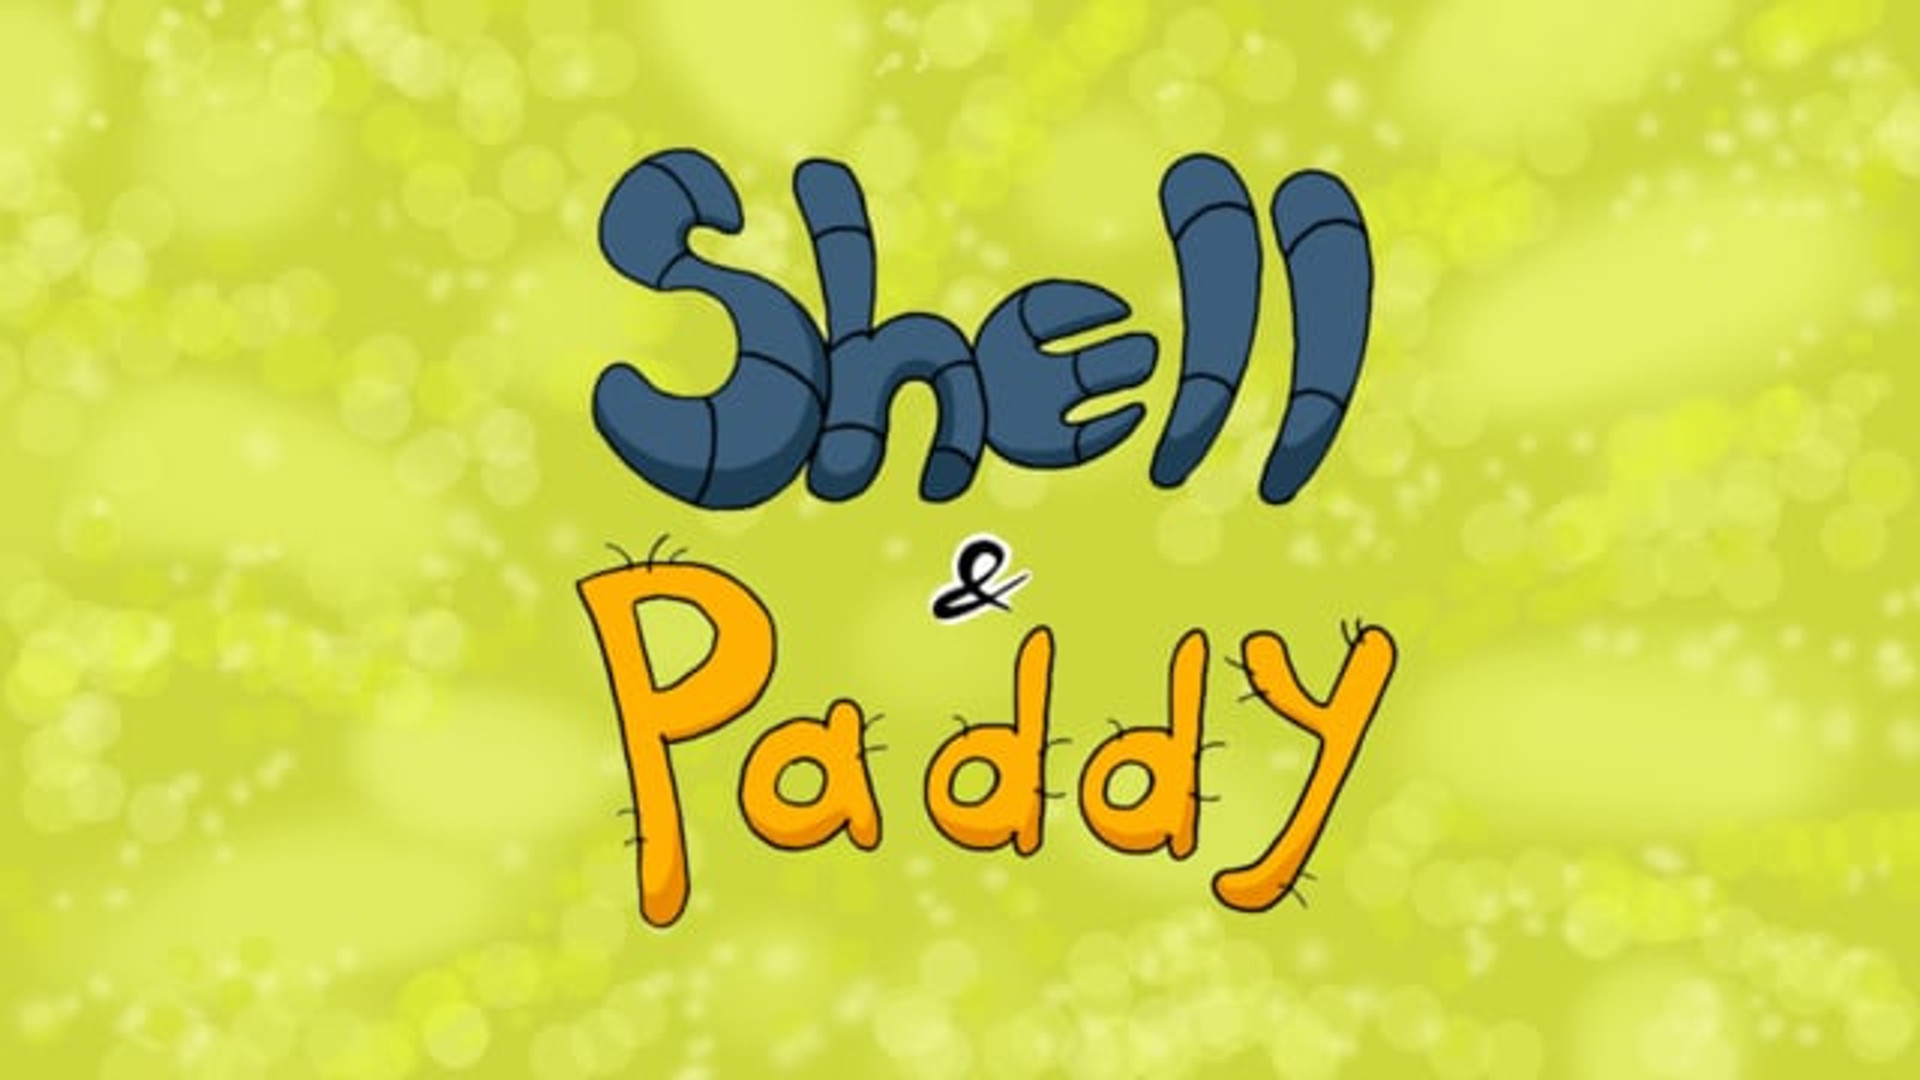 Shell And Paddy Teaser